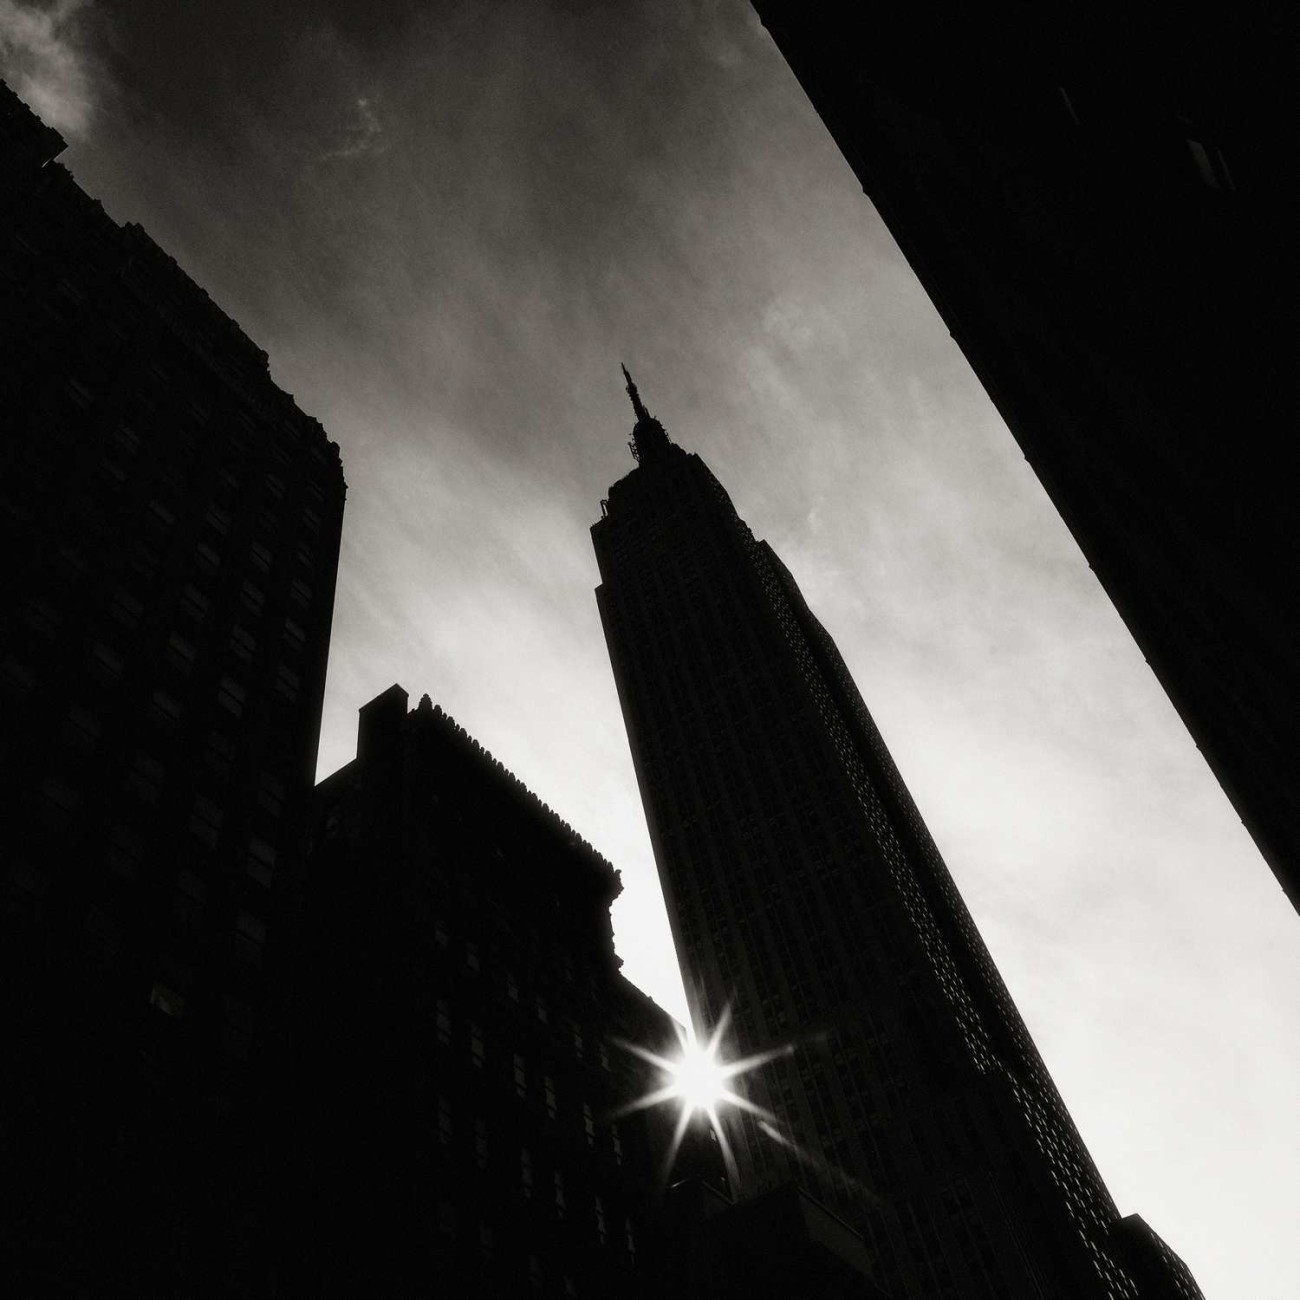 Empire State Building and sun flare, New York, 2011